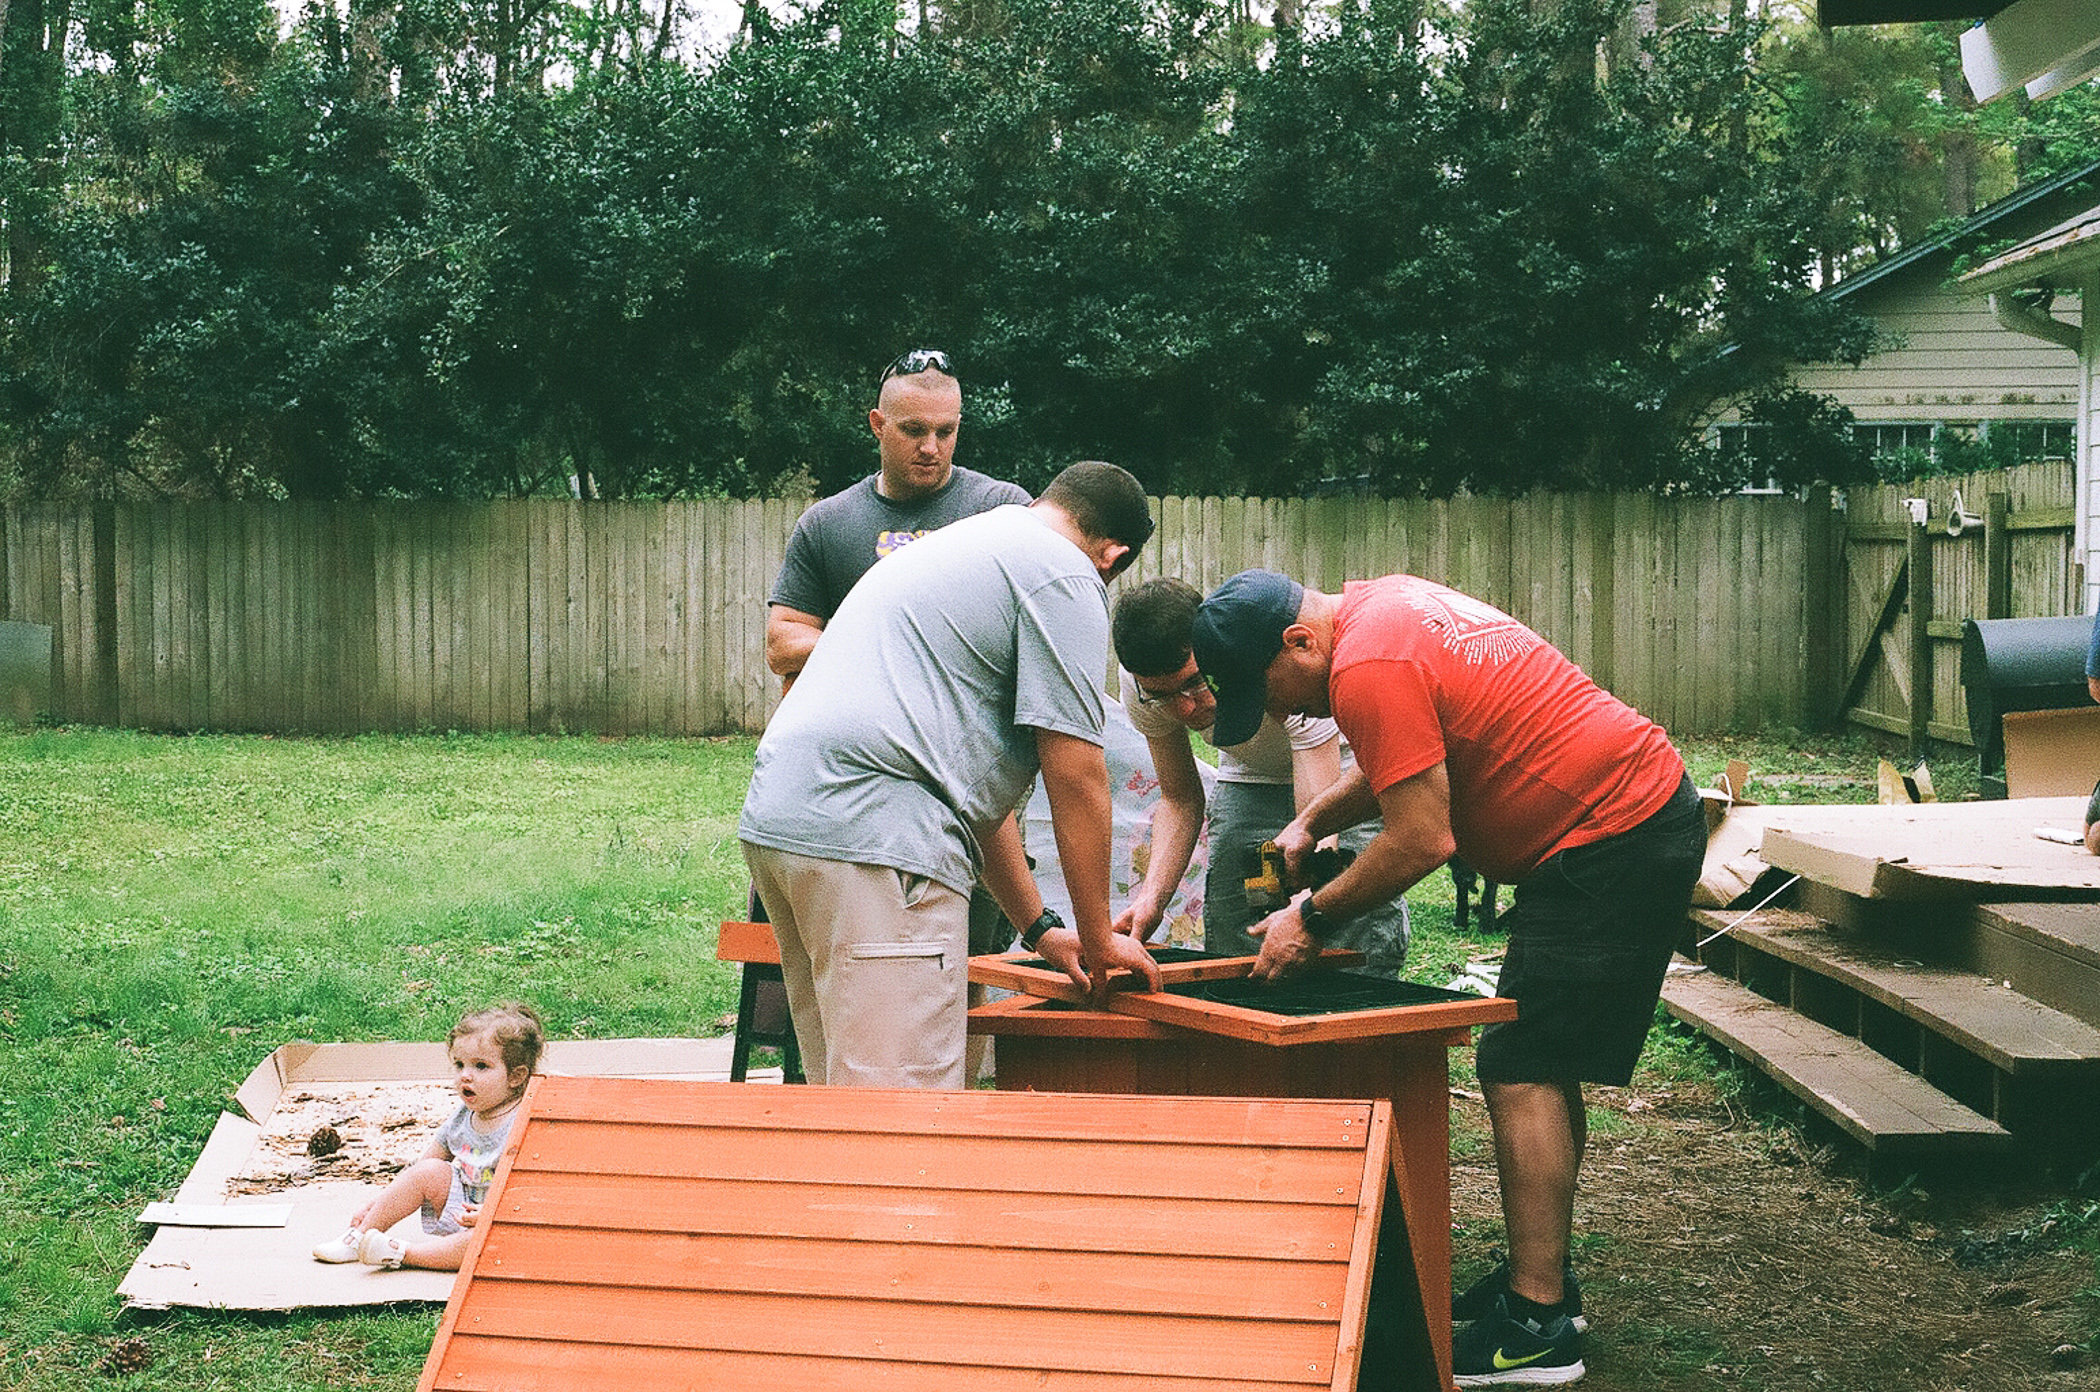 How many men does it take to build one play set?